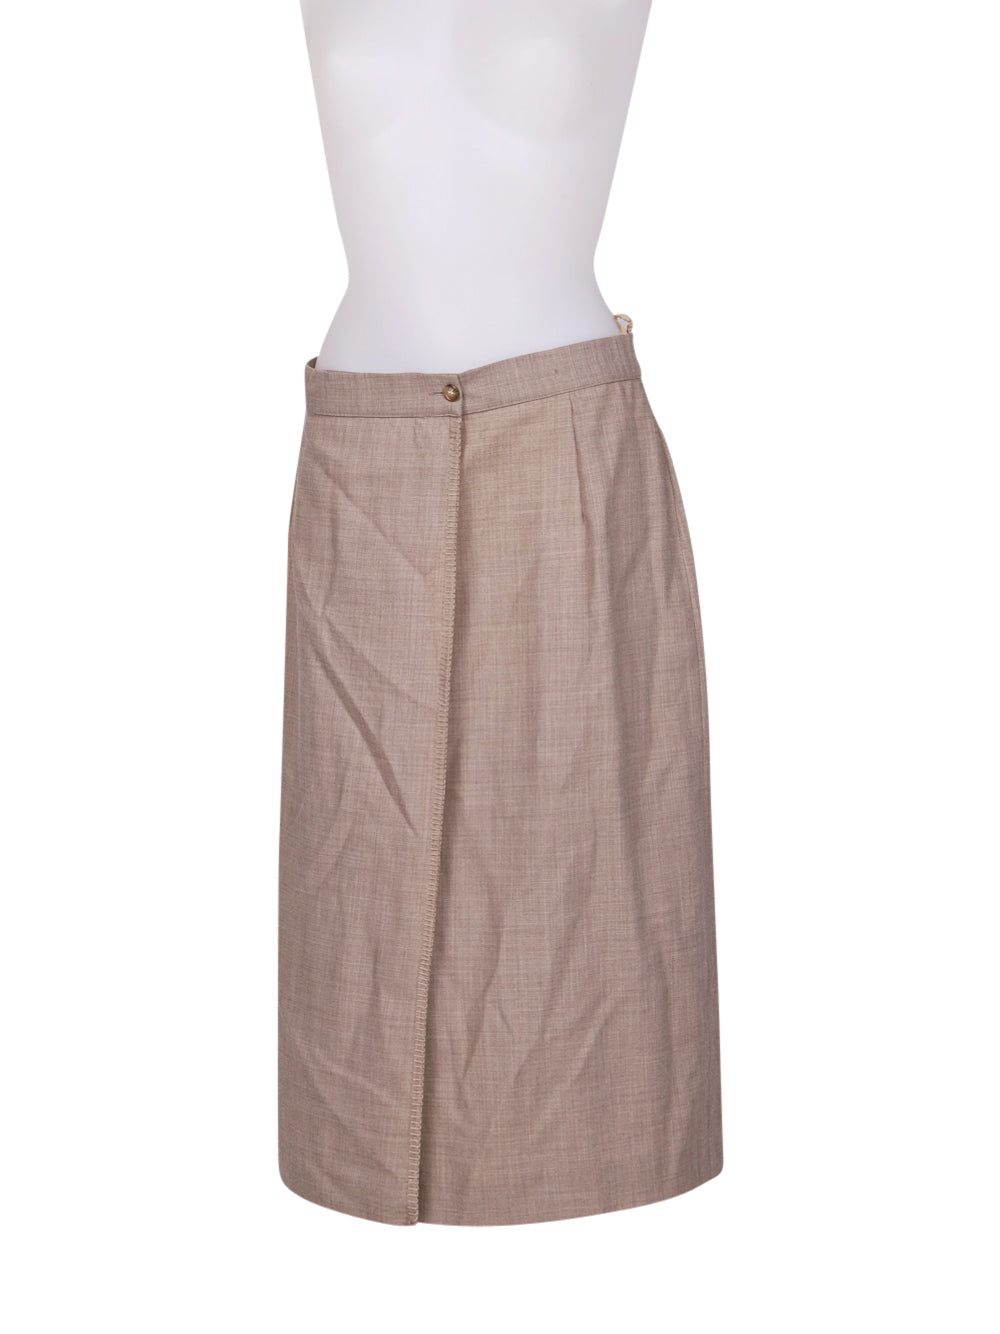 Front photo of Preloved scapa of scotland Beige Woman's skirt - size 8/S